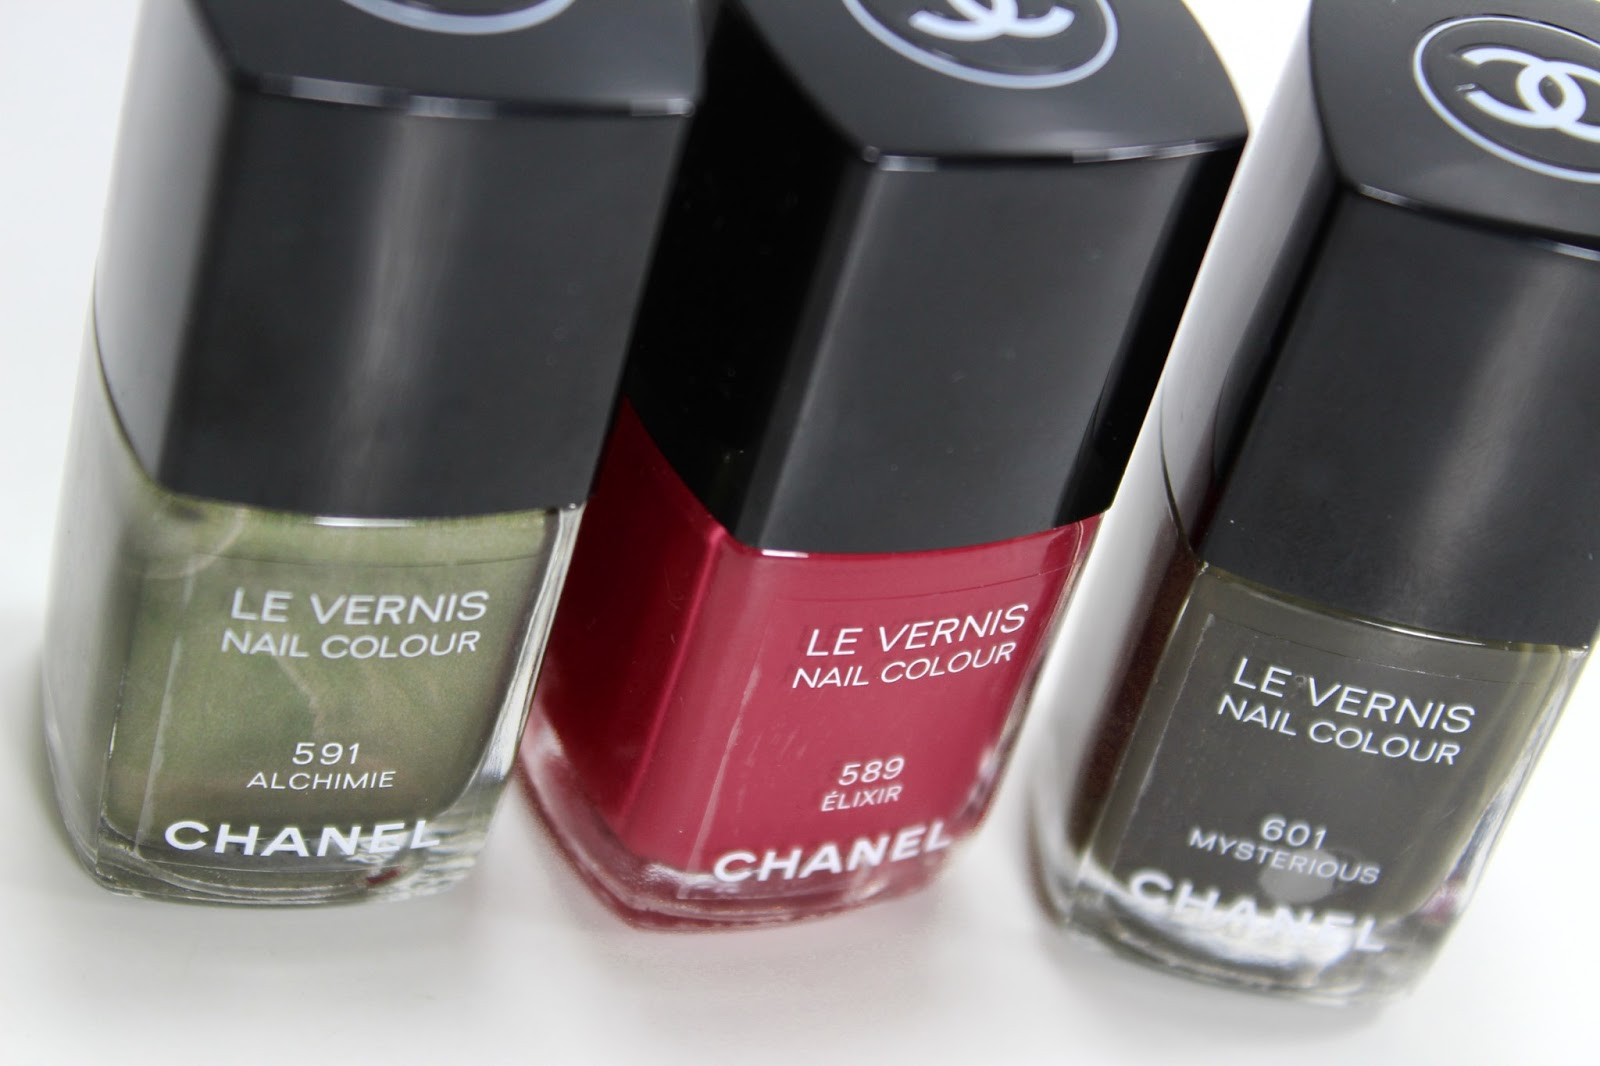 chanel fall nail colors 2013 chanel 201 lixir alchimie and ...